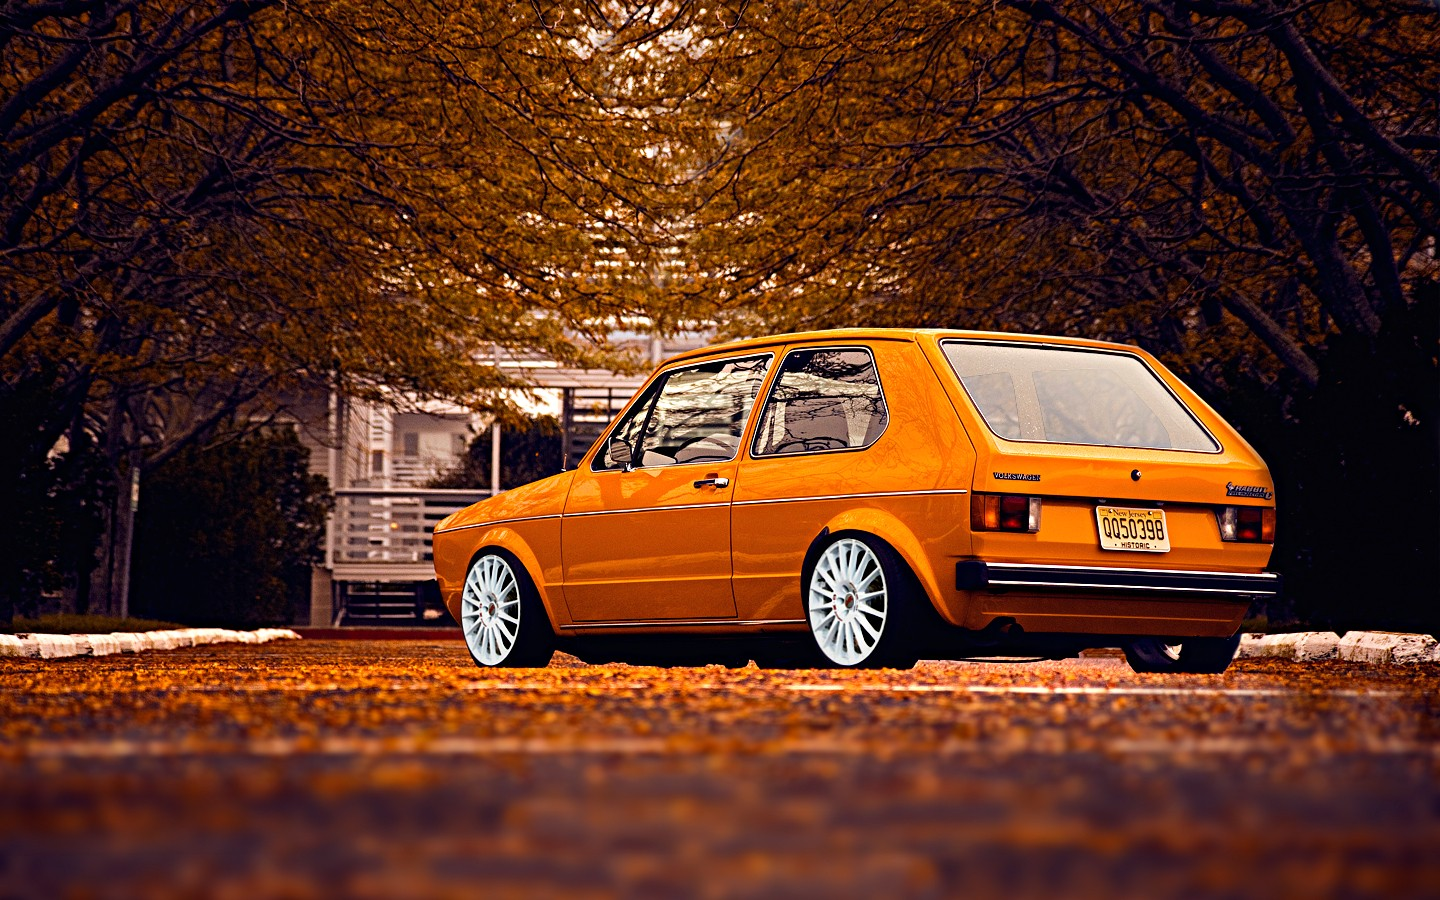 Hd Vw Wallpaper Wallpapersafari